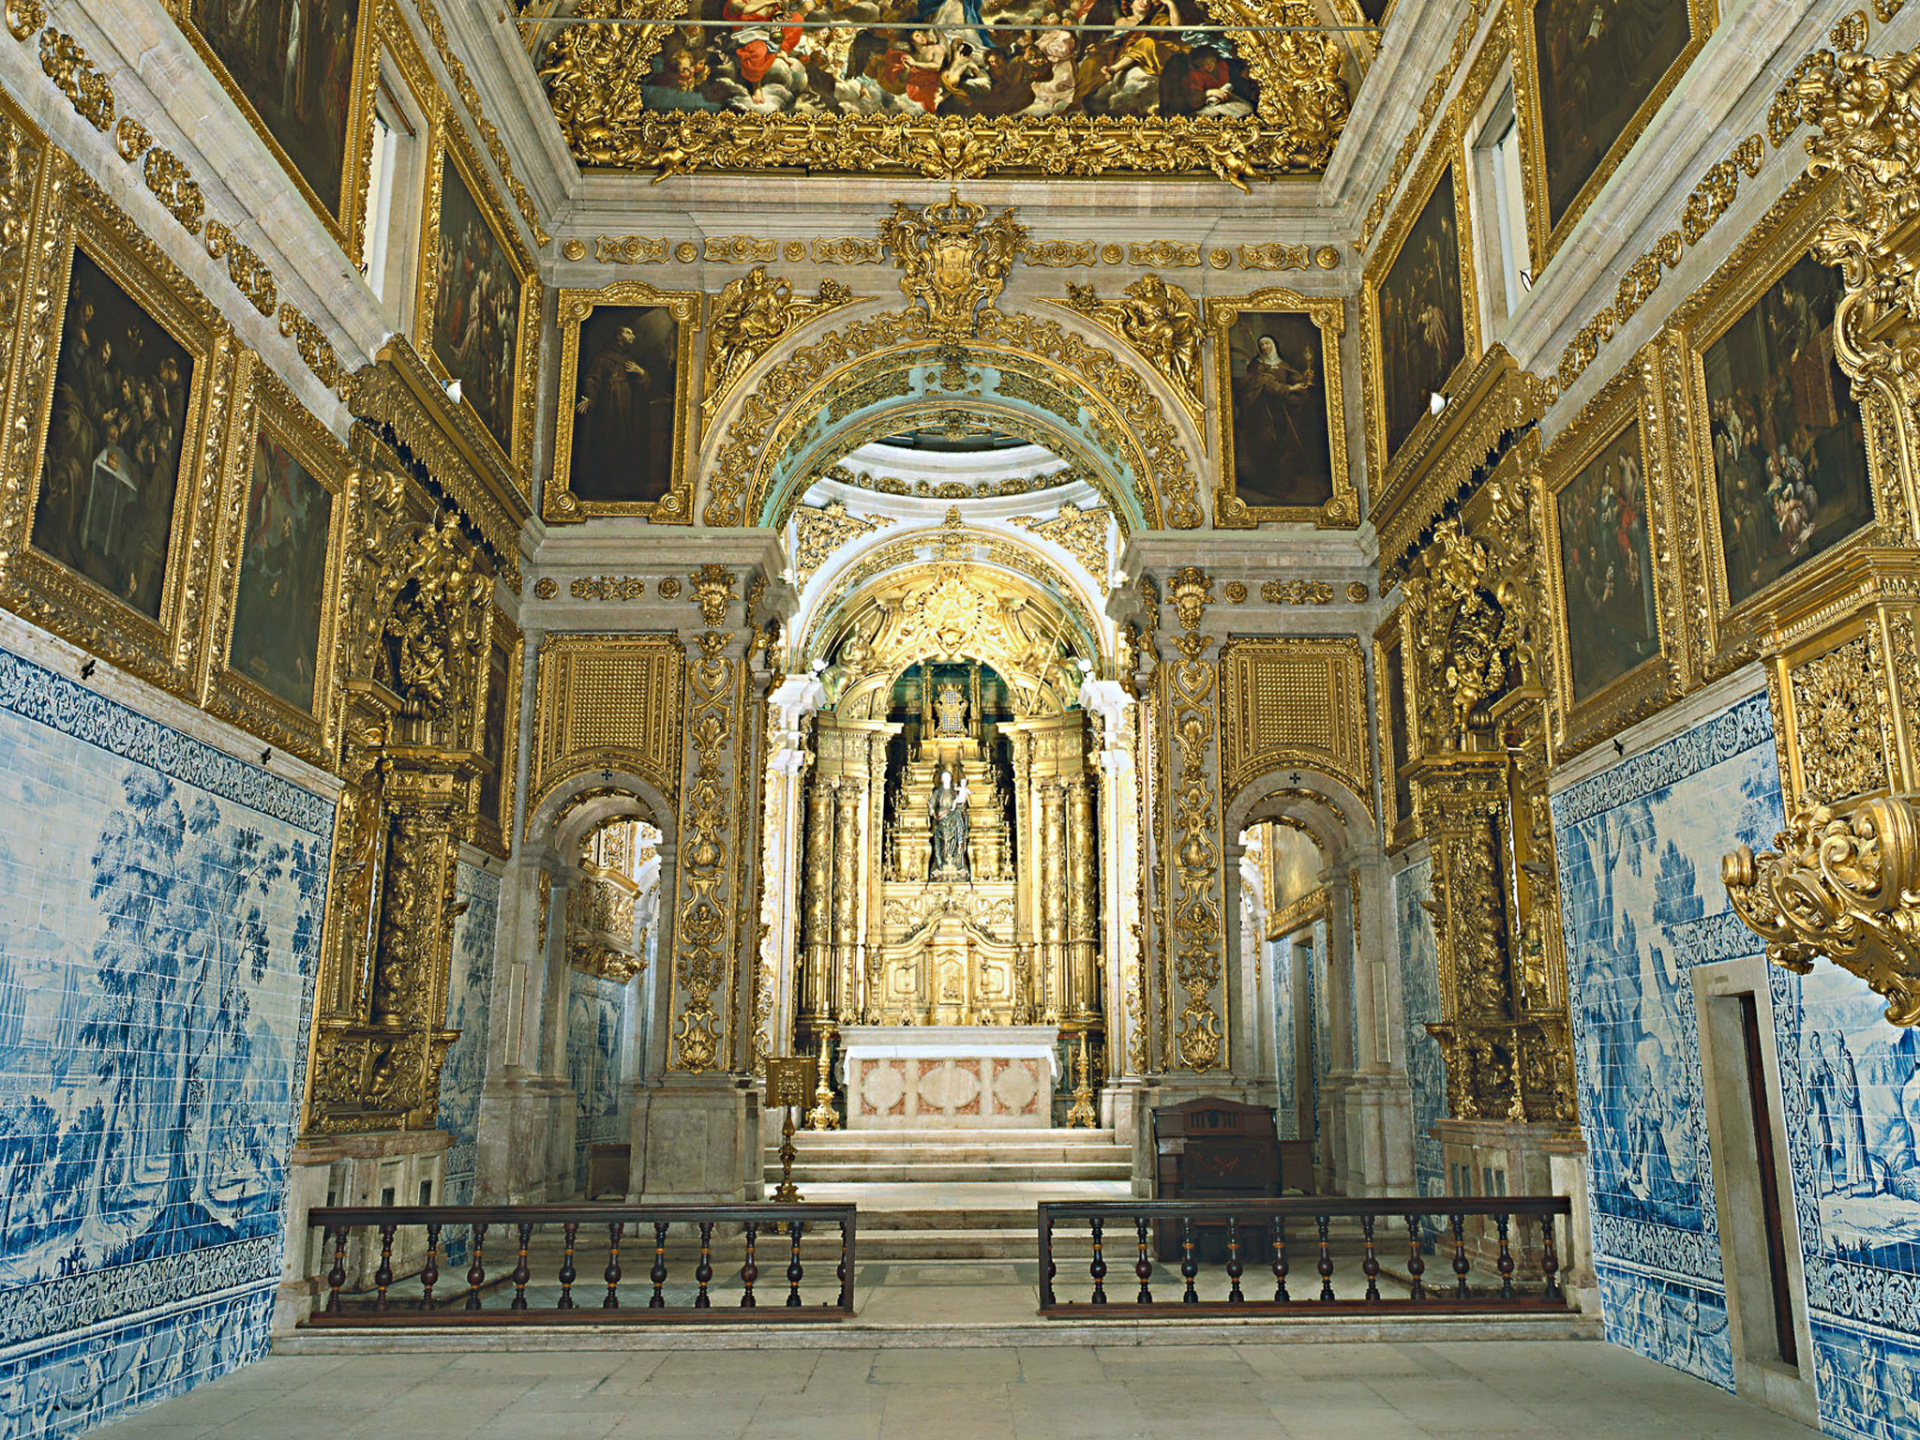 Museums in Portugal: National Azulejo Museum museums in portugal Museums in Portugal: See a Selection of Some of the Most Prestigious See a Selection of Some of the Most Prestigious Museums in Portugal 5 2